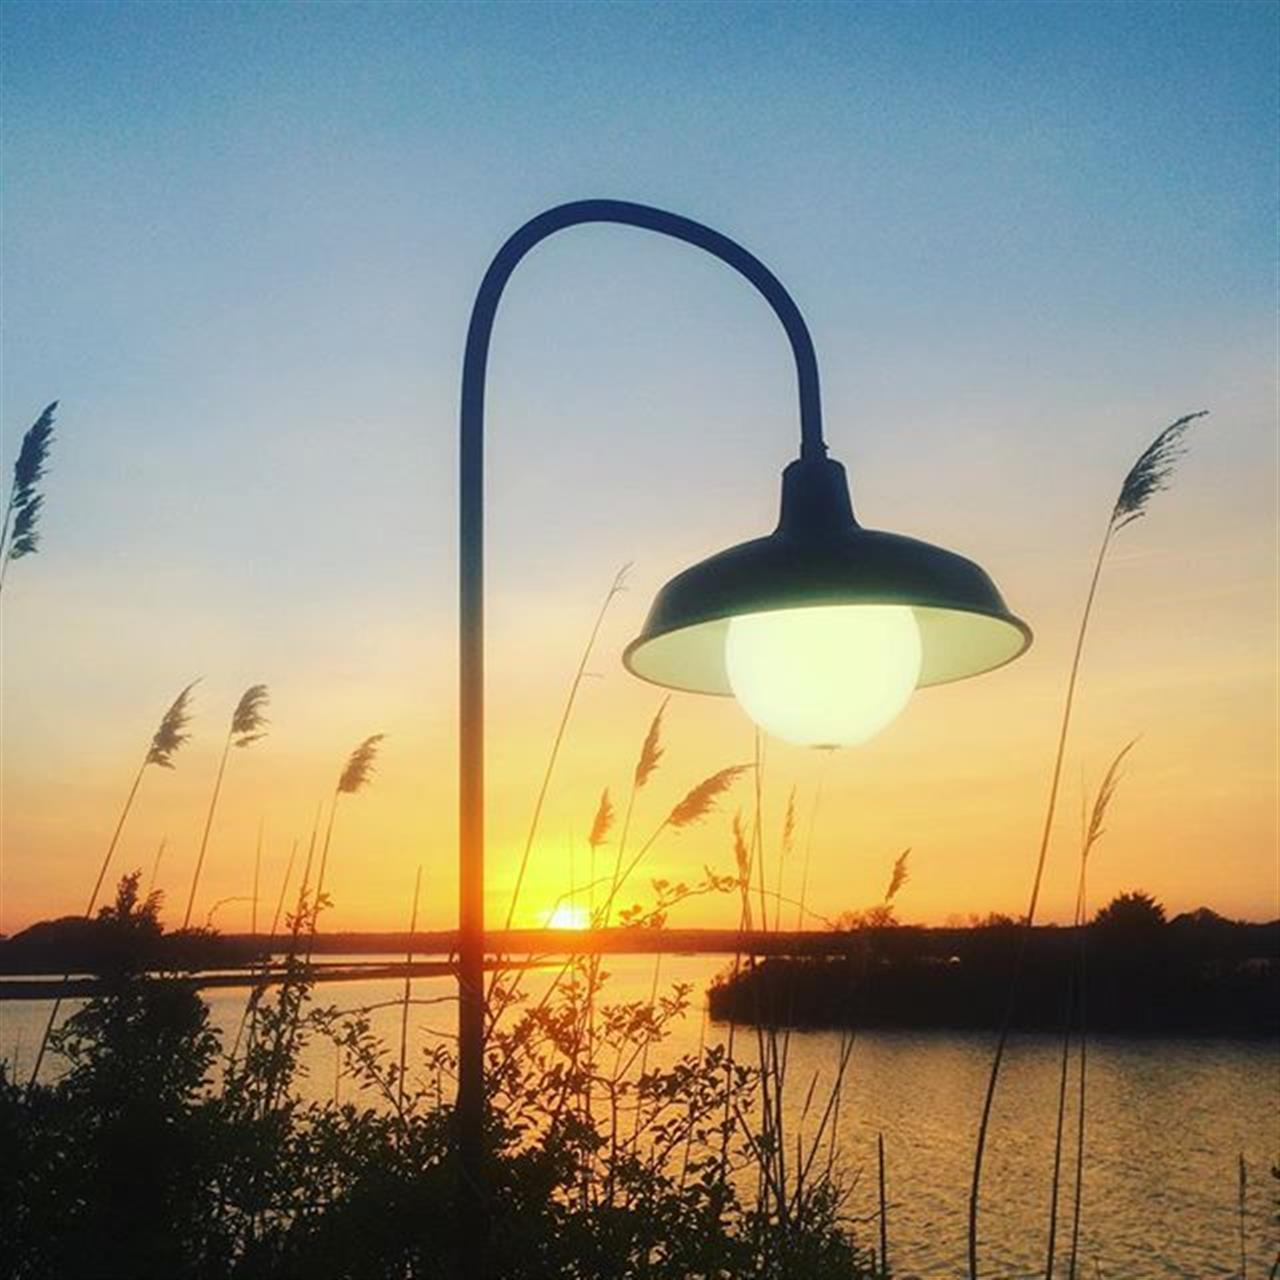 Have a de light filled night #peace #inspiration #possibilities #hope #magic #outdoors #nature #sunset